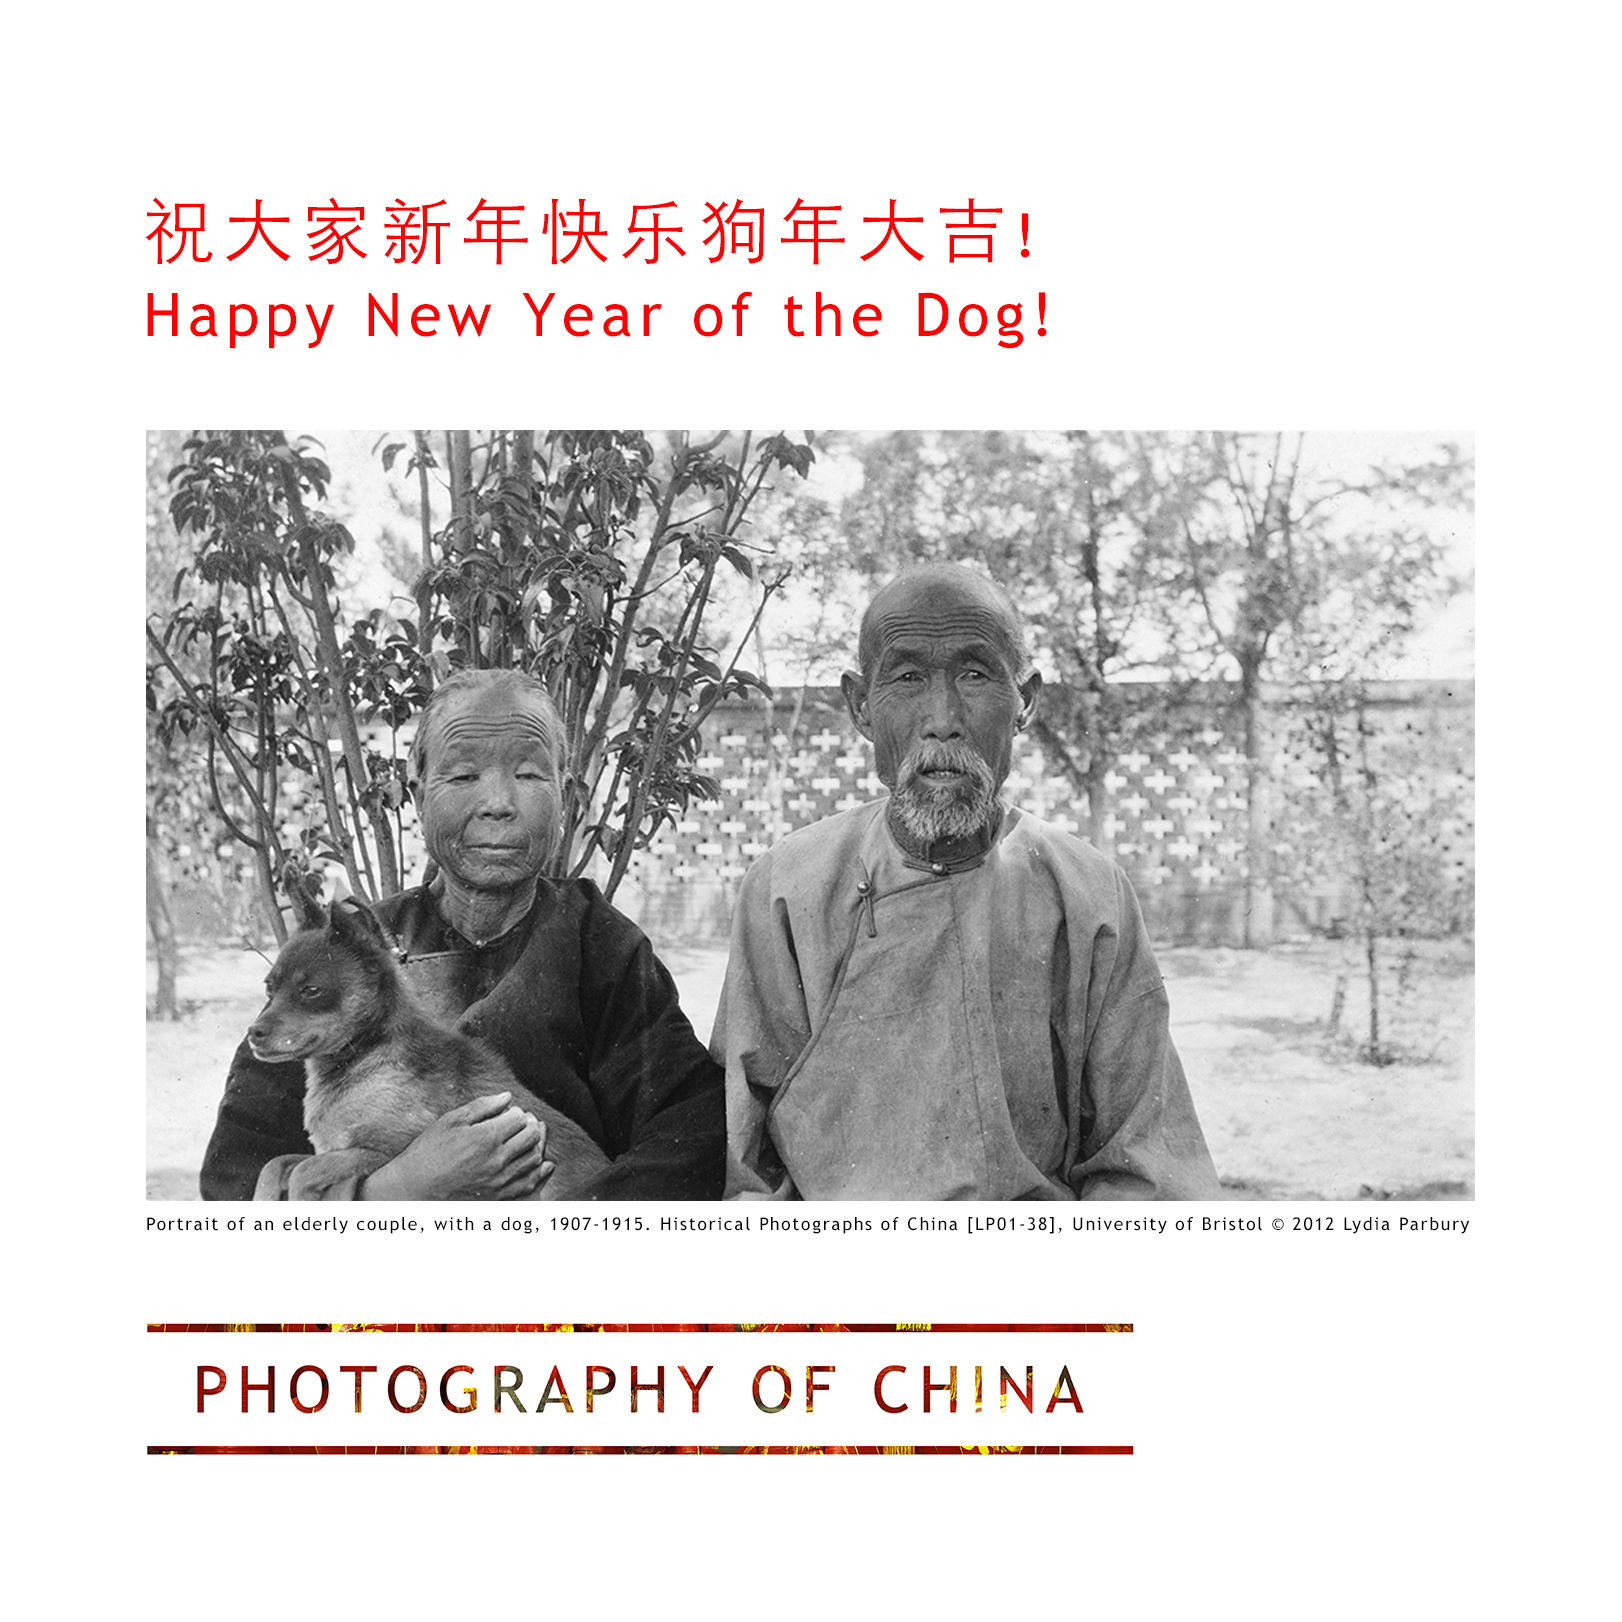 happy-new-year-of-the-dog-2018-photography-of-china.jpg